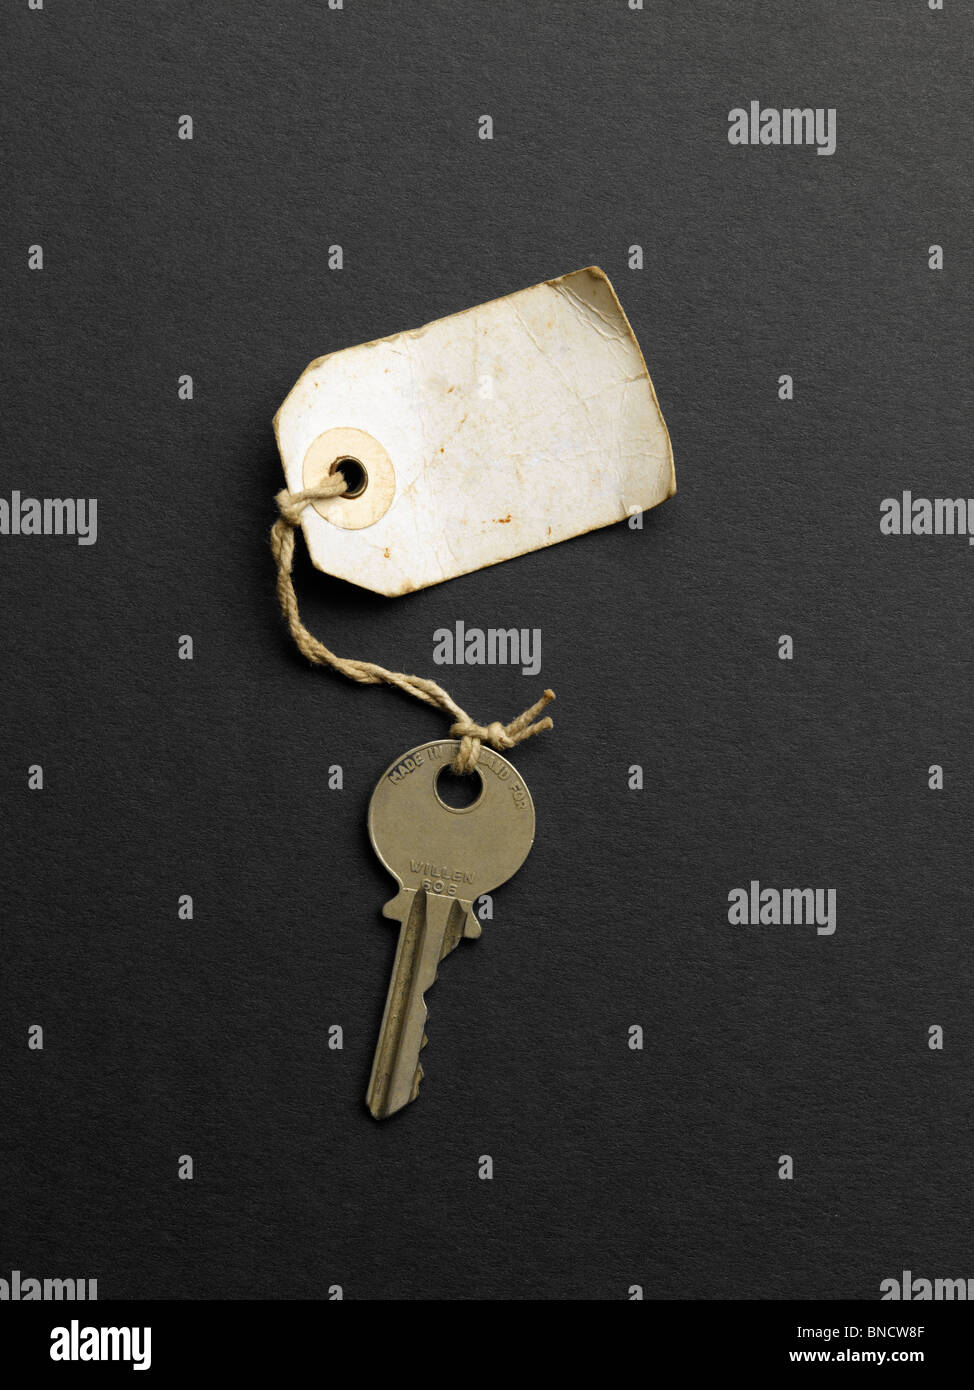 Old key with label no writing - Stock Image